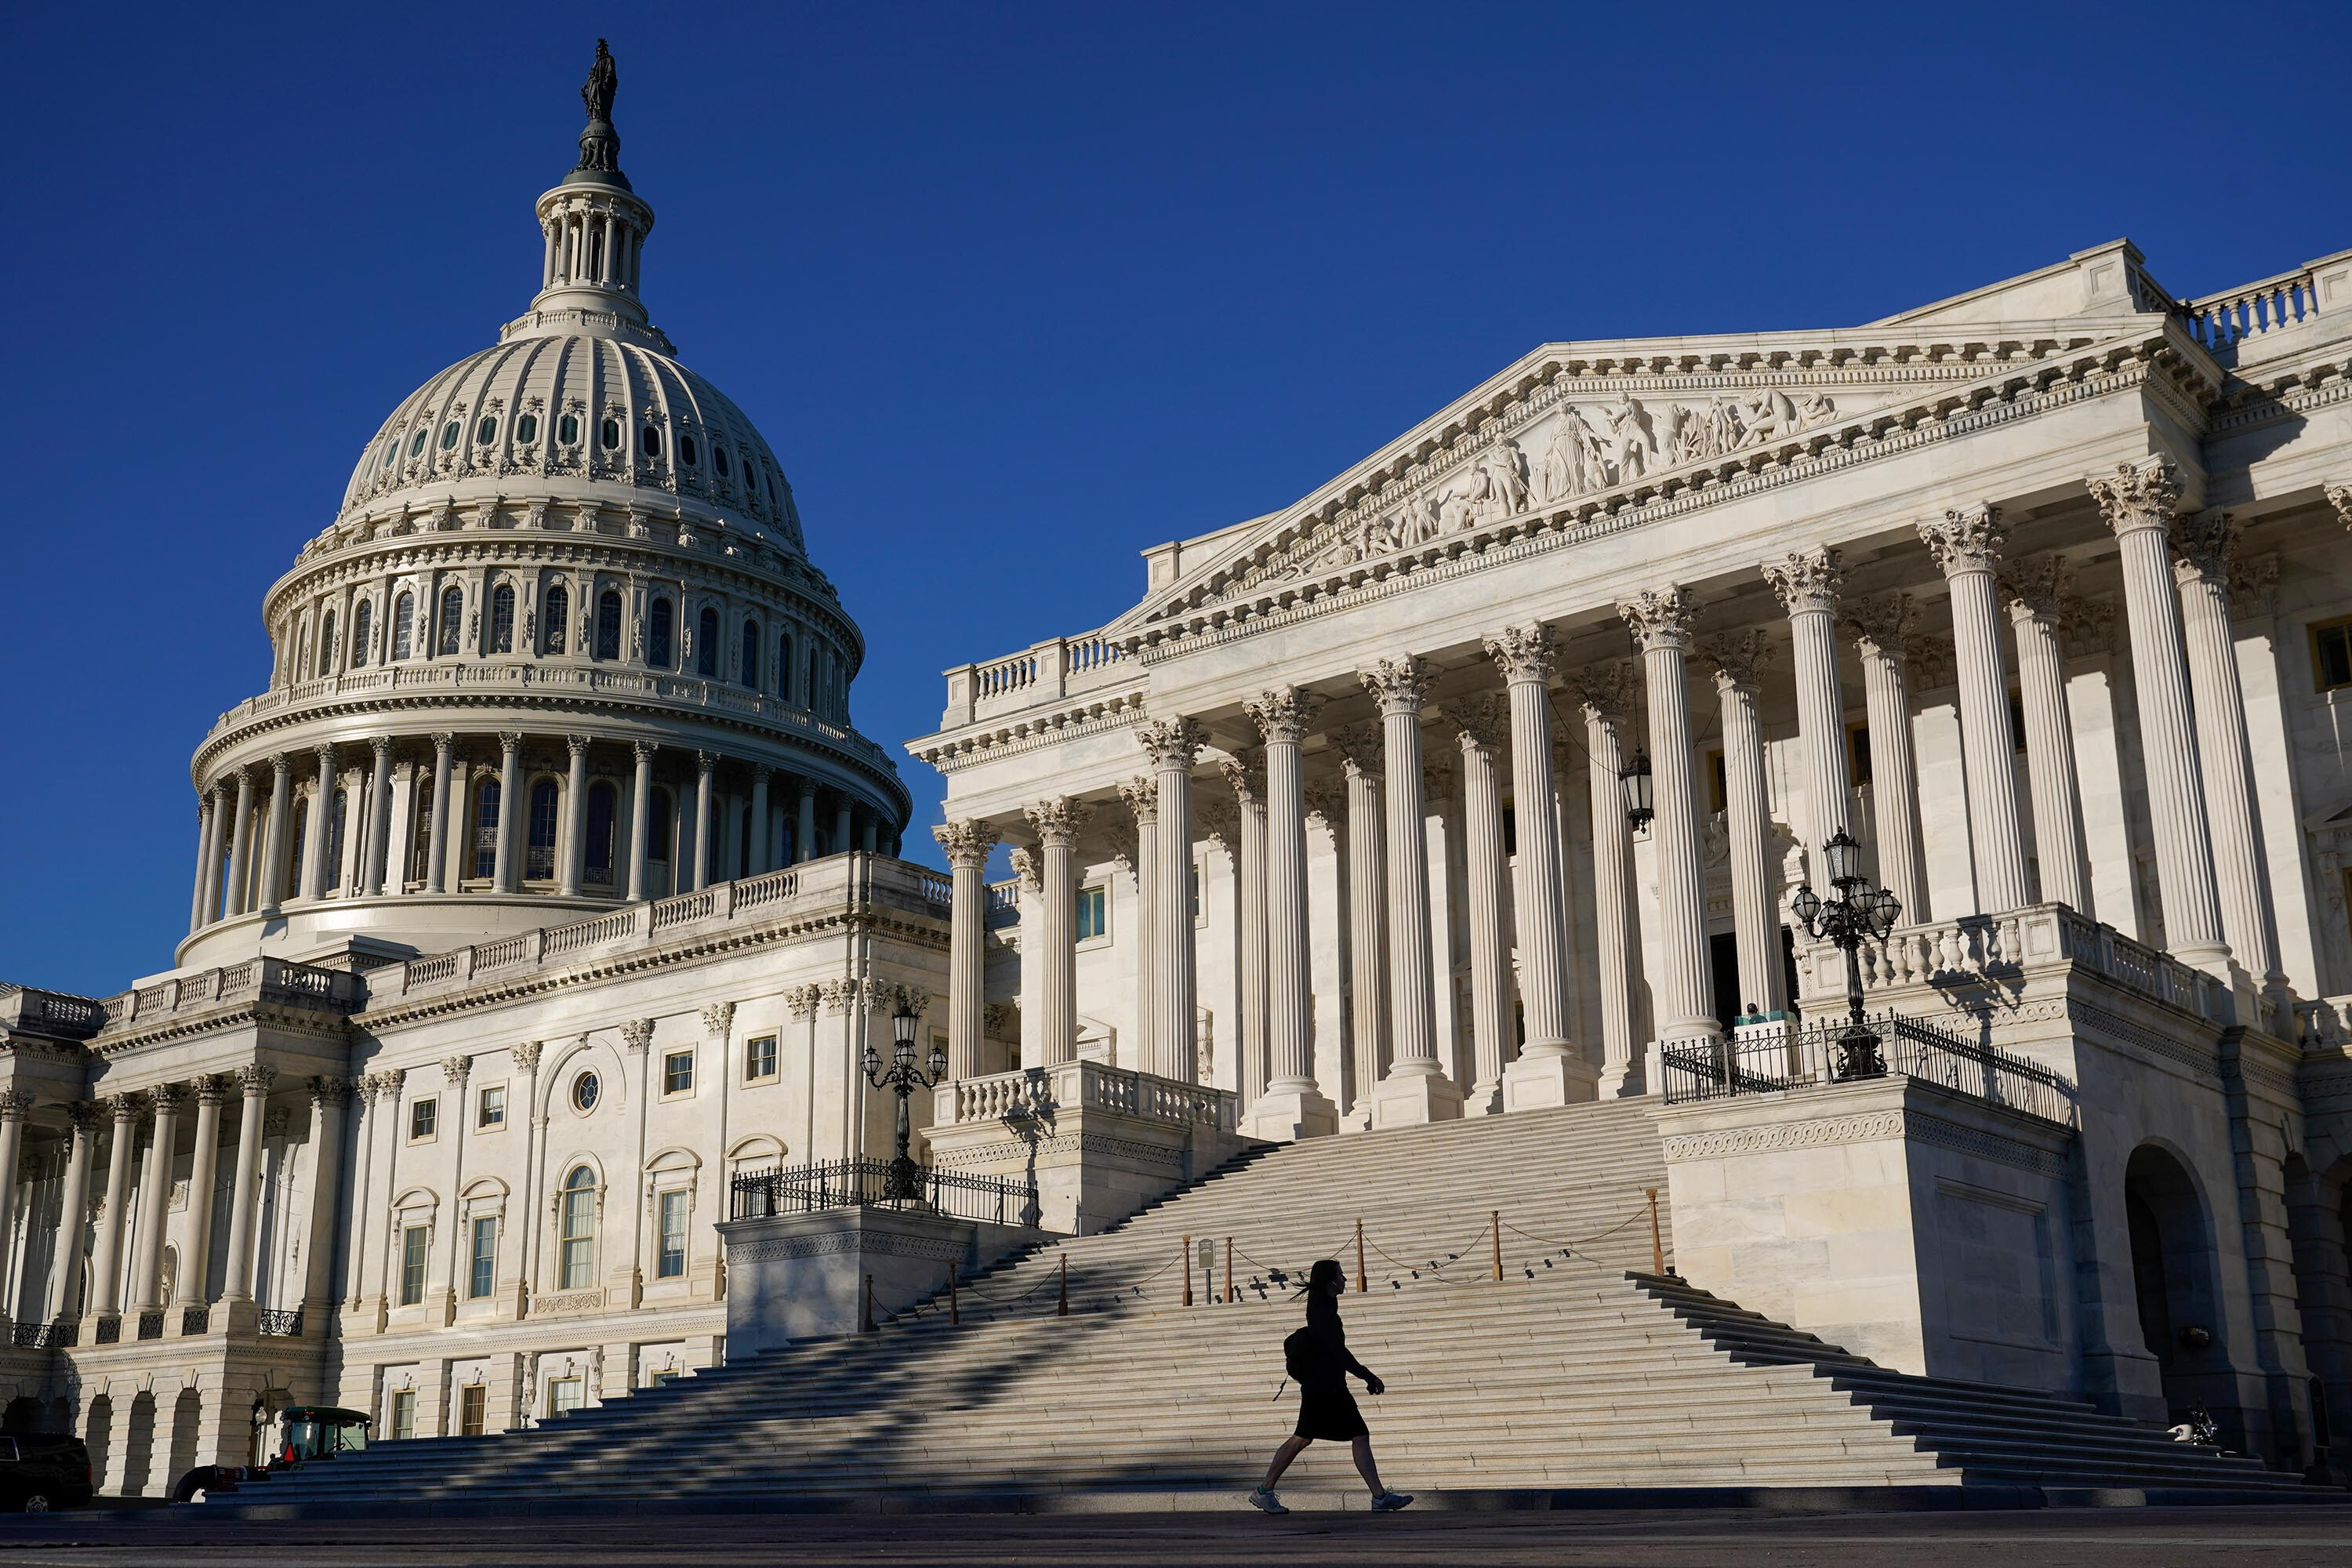 Capitol Police who protect members of Congress must get vaccinated or be reassigned